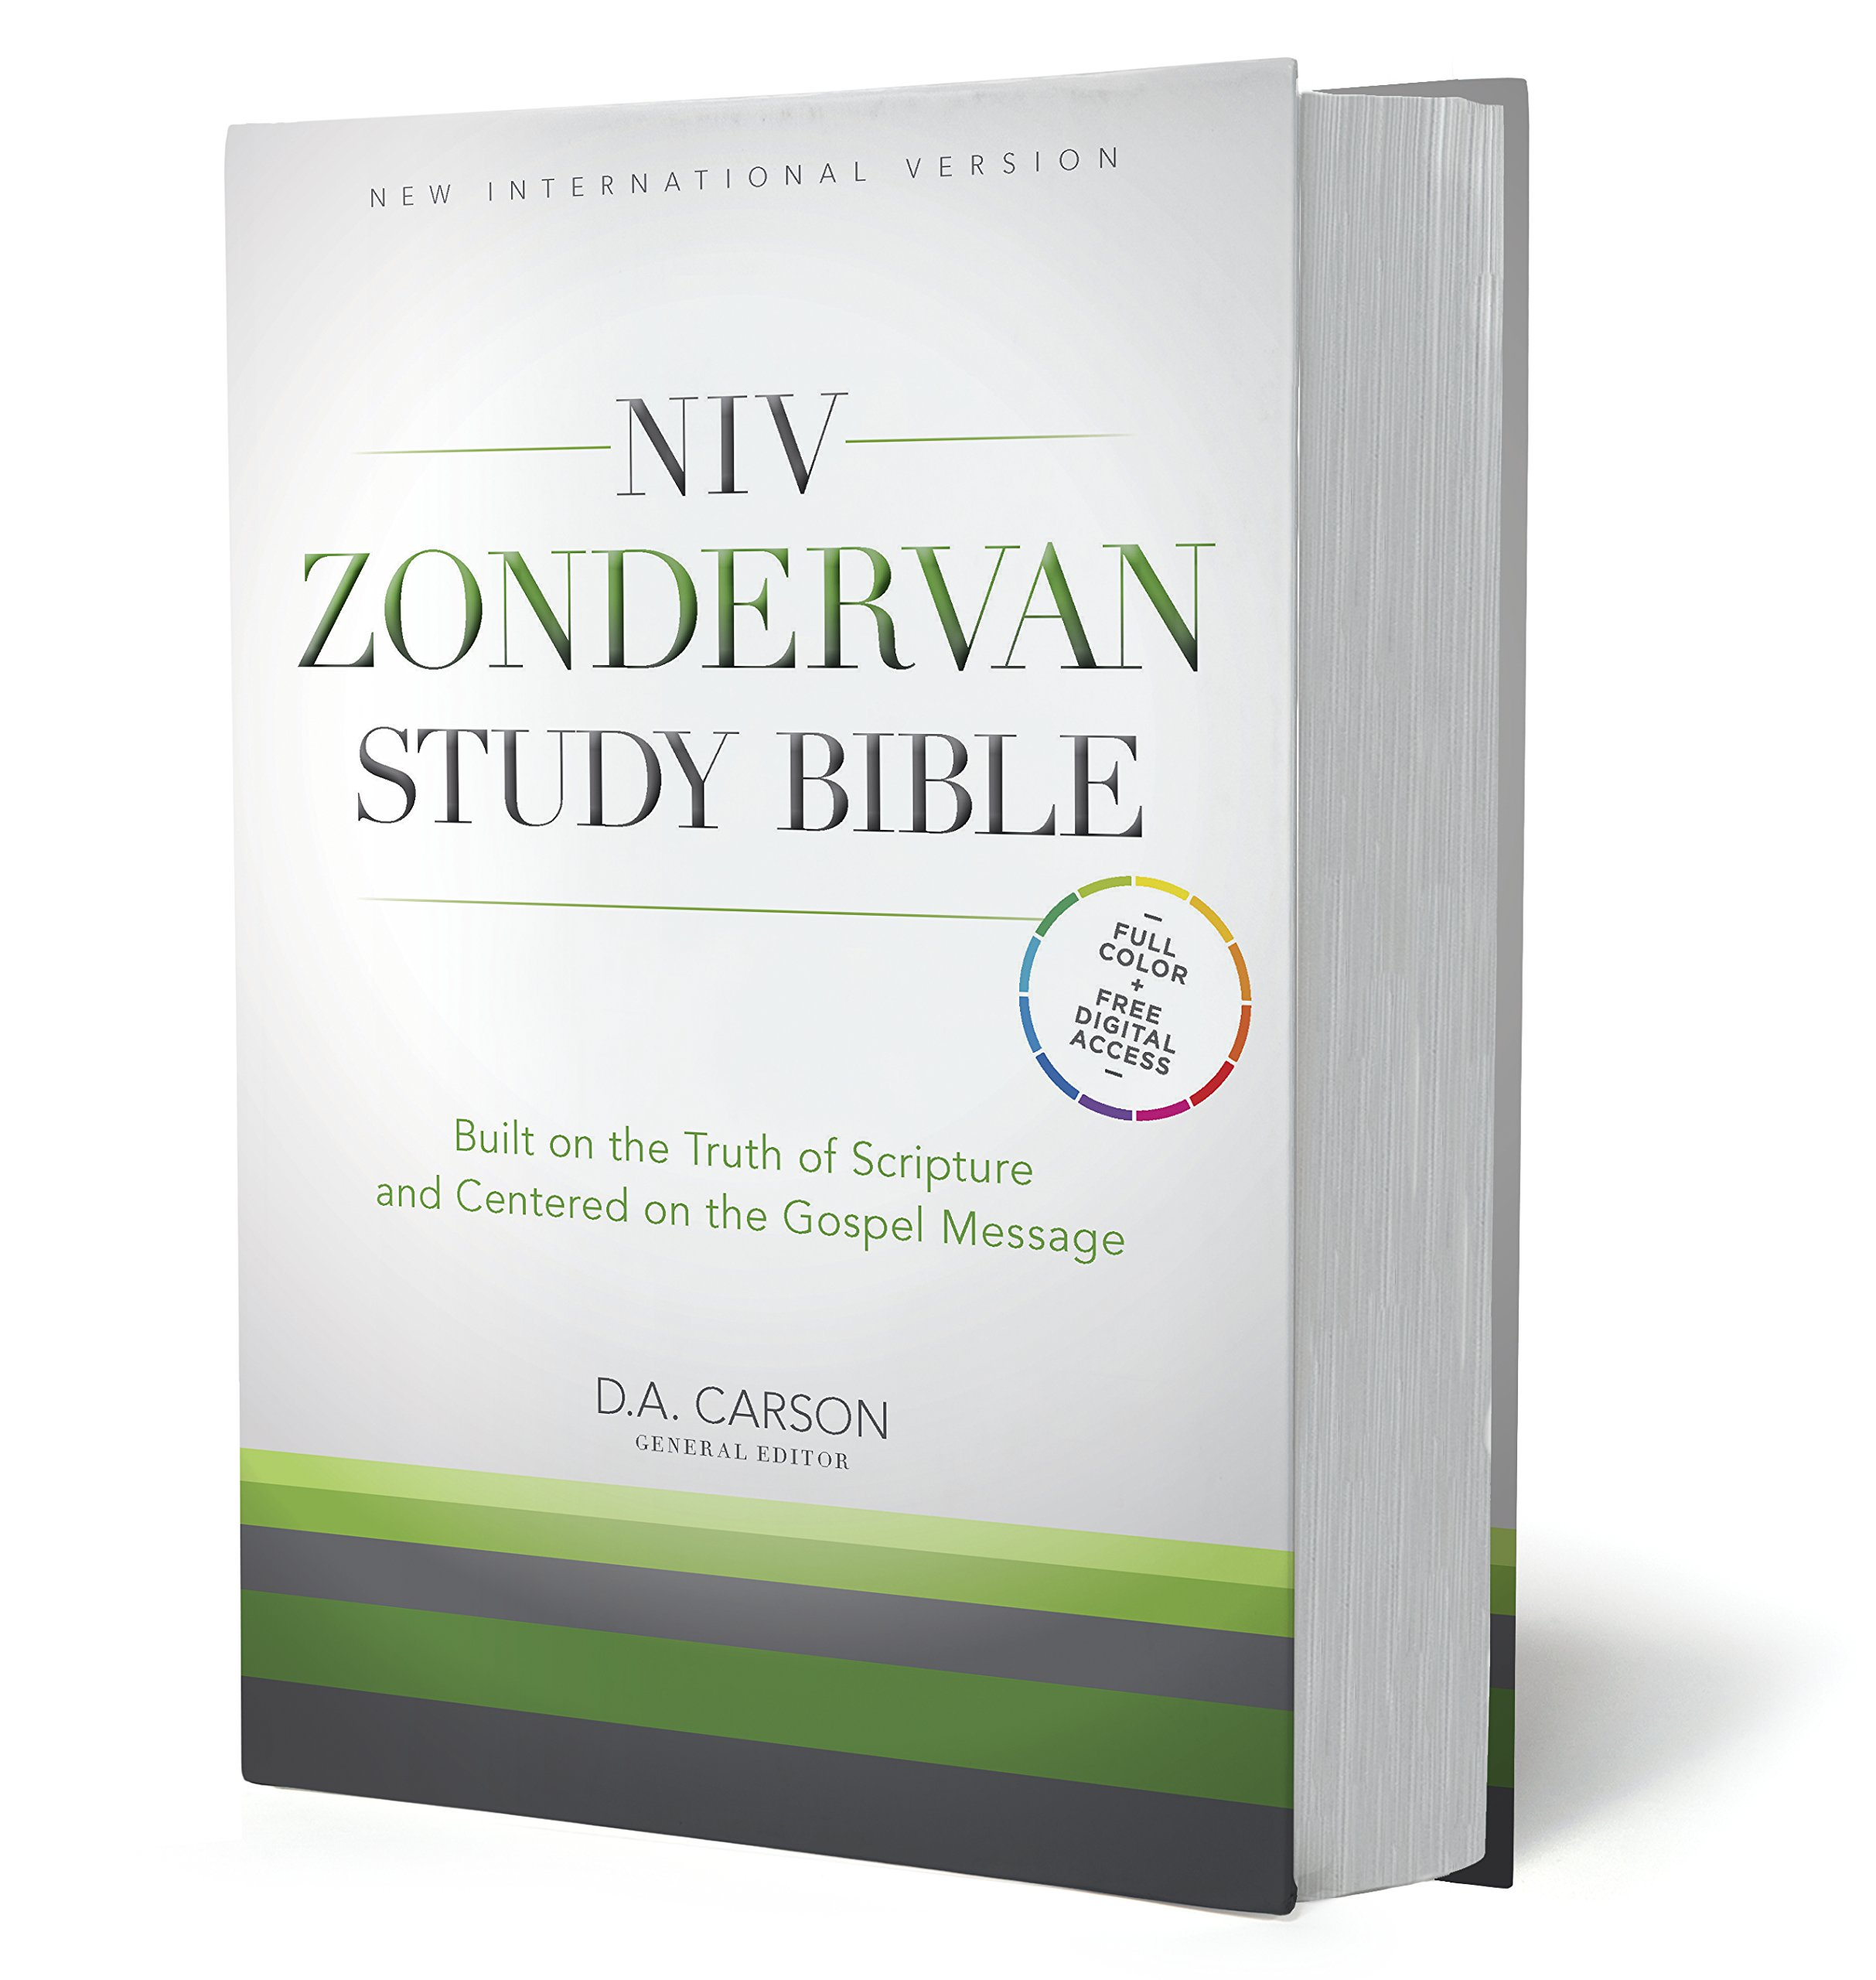 NIV Zondervan Study Bible, Hardcover: Built on the Truth of